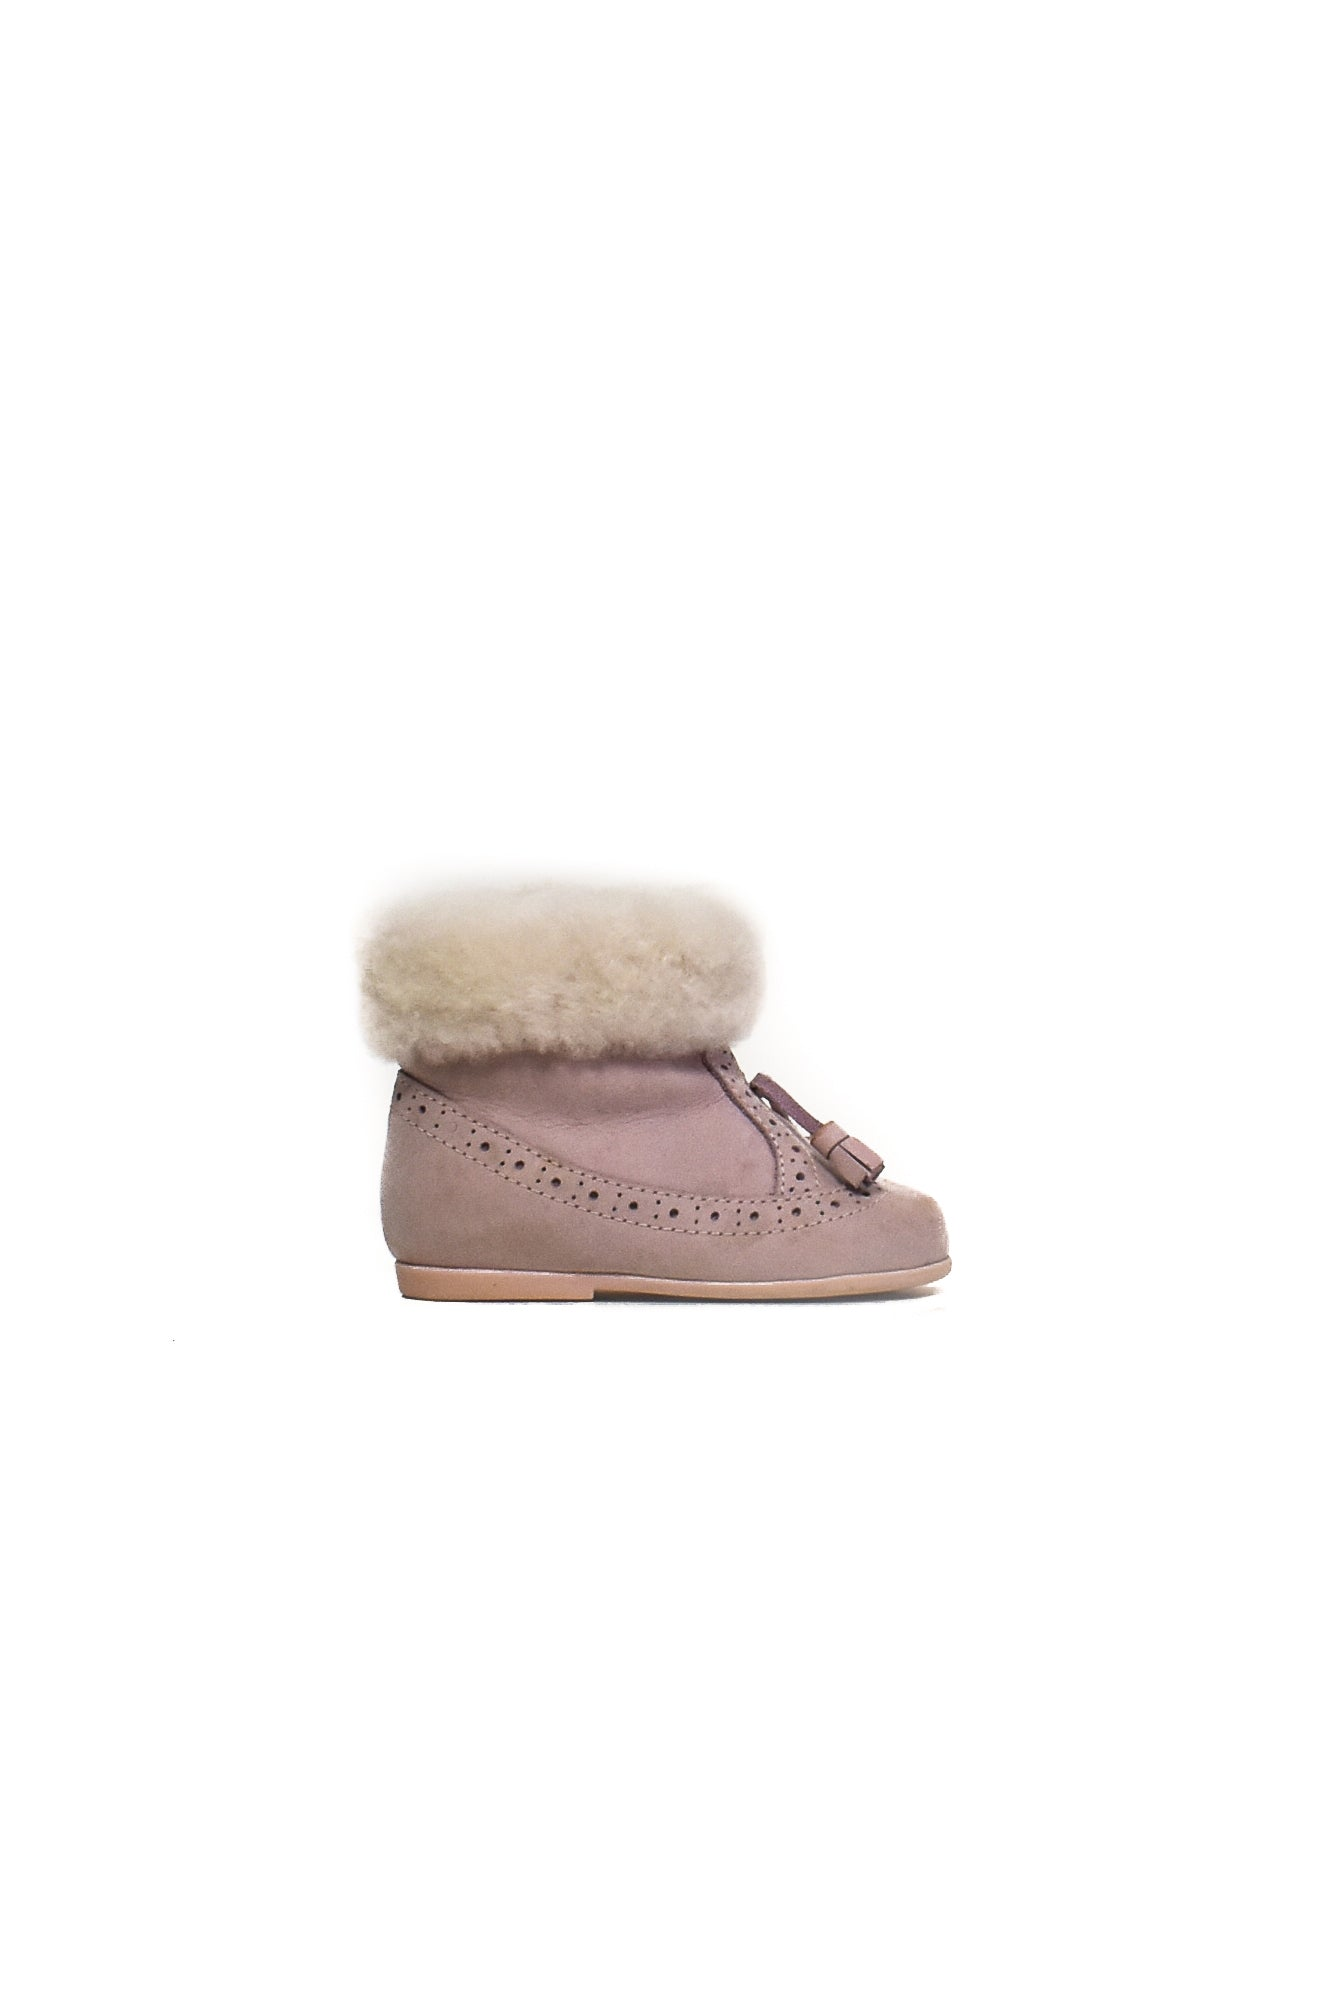 10006709 Jacadi Baby~ Boots 12-18M (EU 19) at Retykle